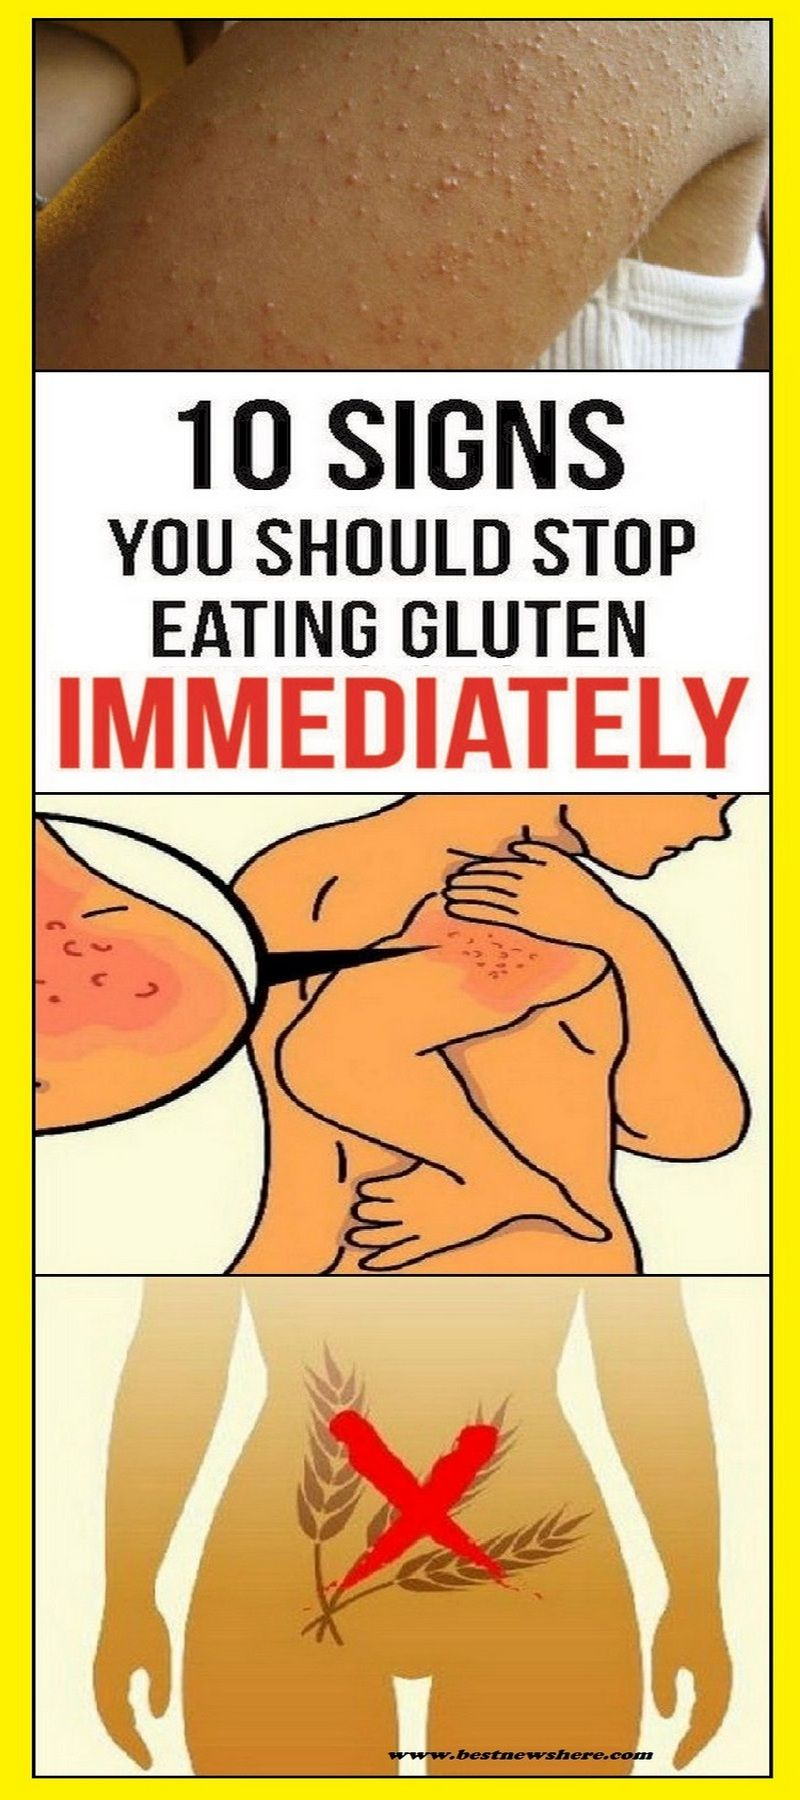 Nowadays, doctors people to use a glutenfree